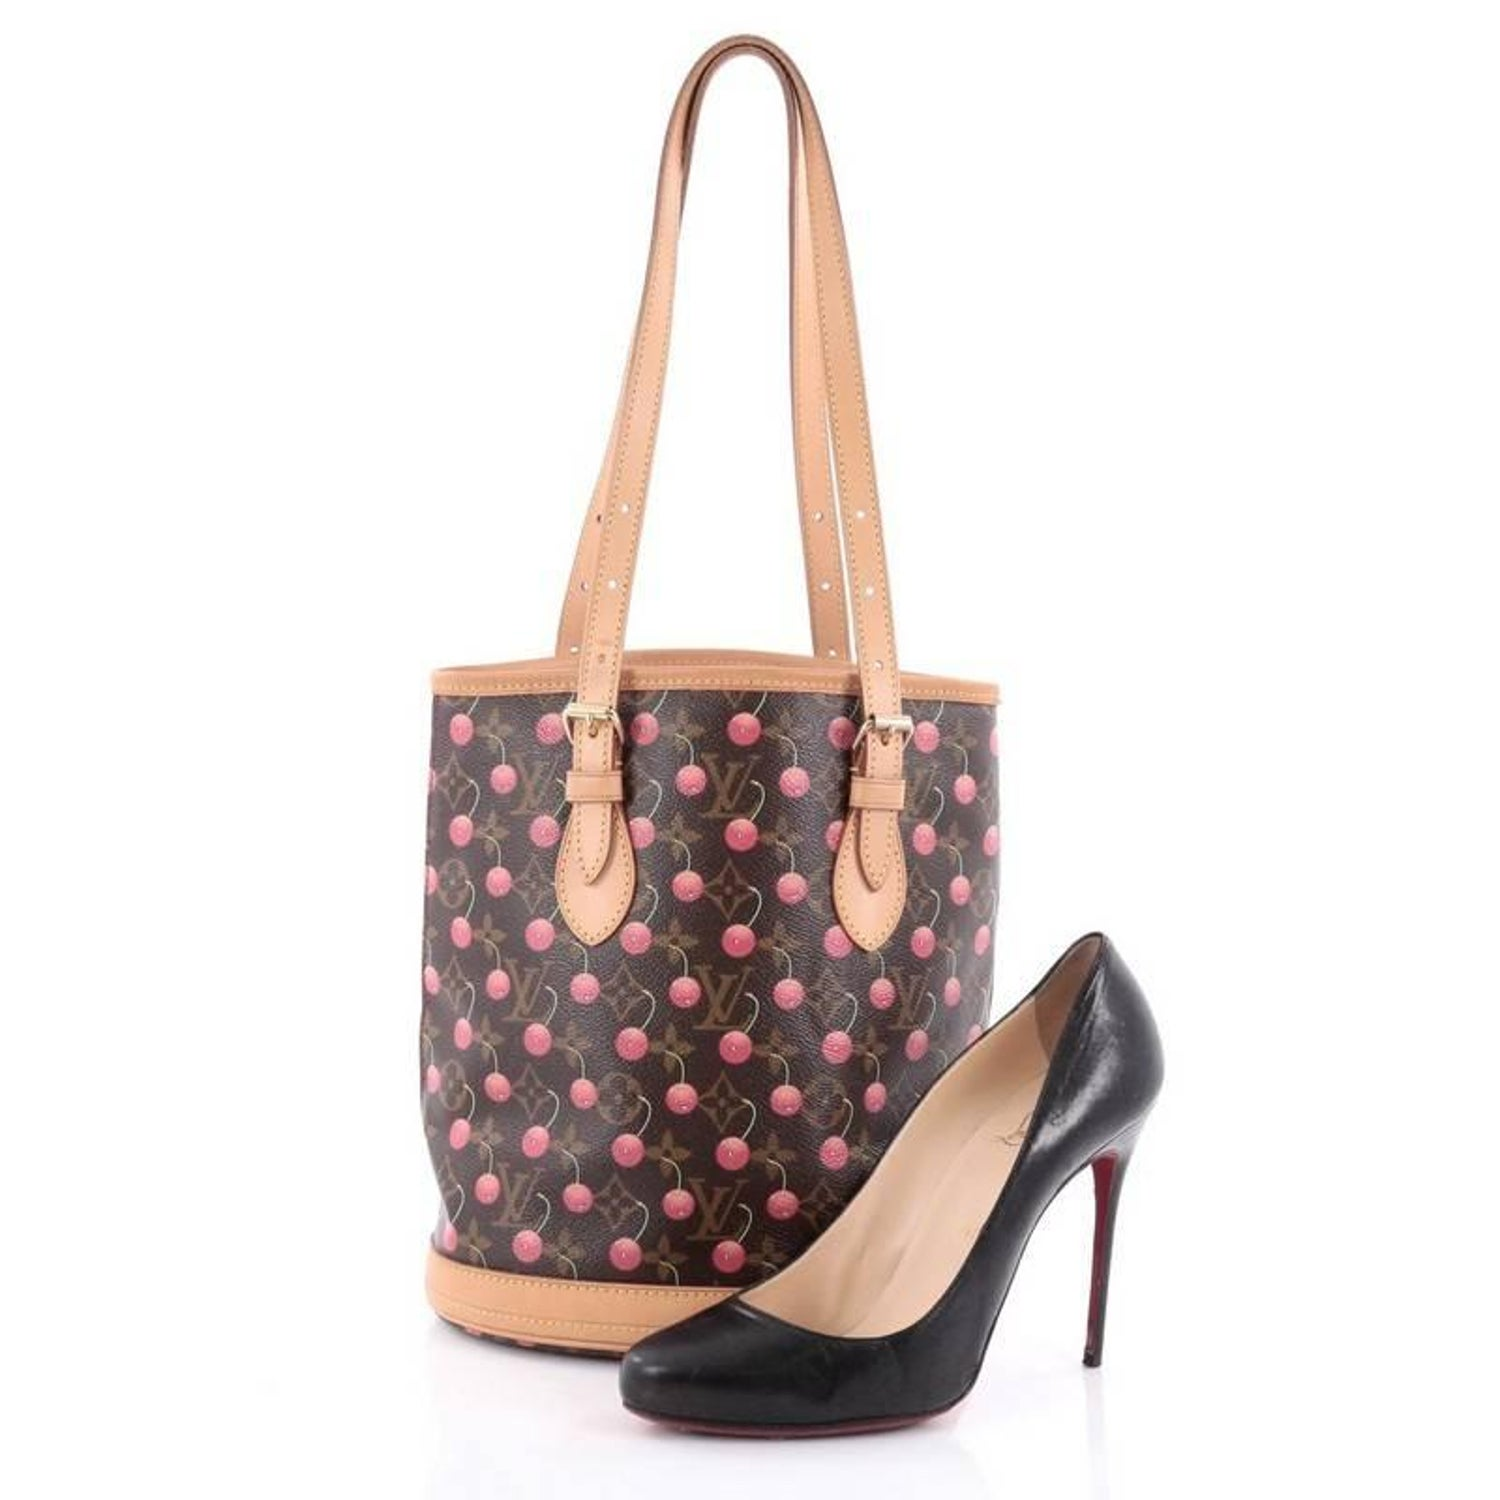 31692360f6cc Louis Vuitton Bucket Bag Limited Edition Cerises at 1stdibs